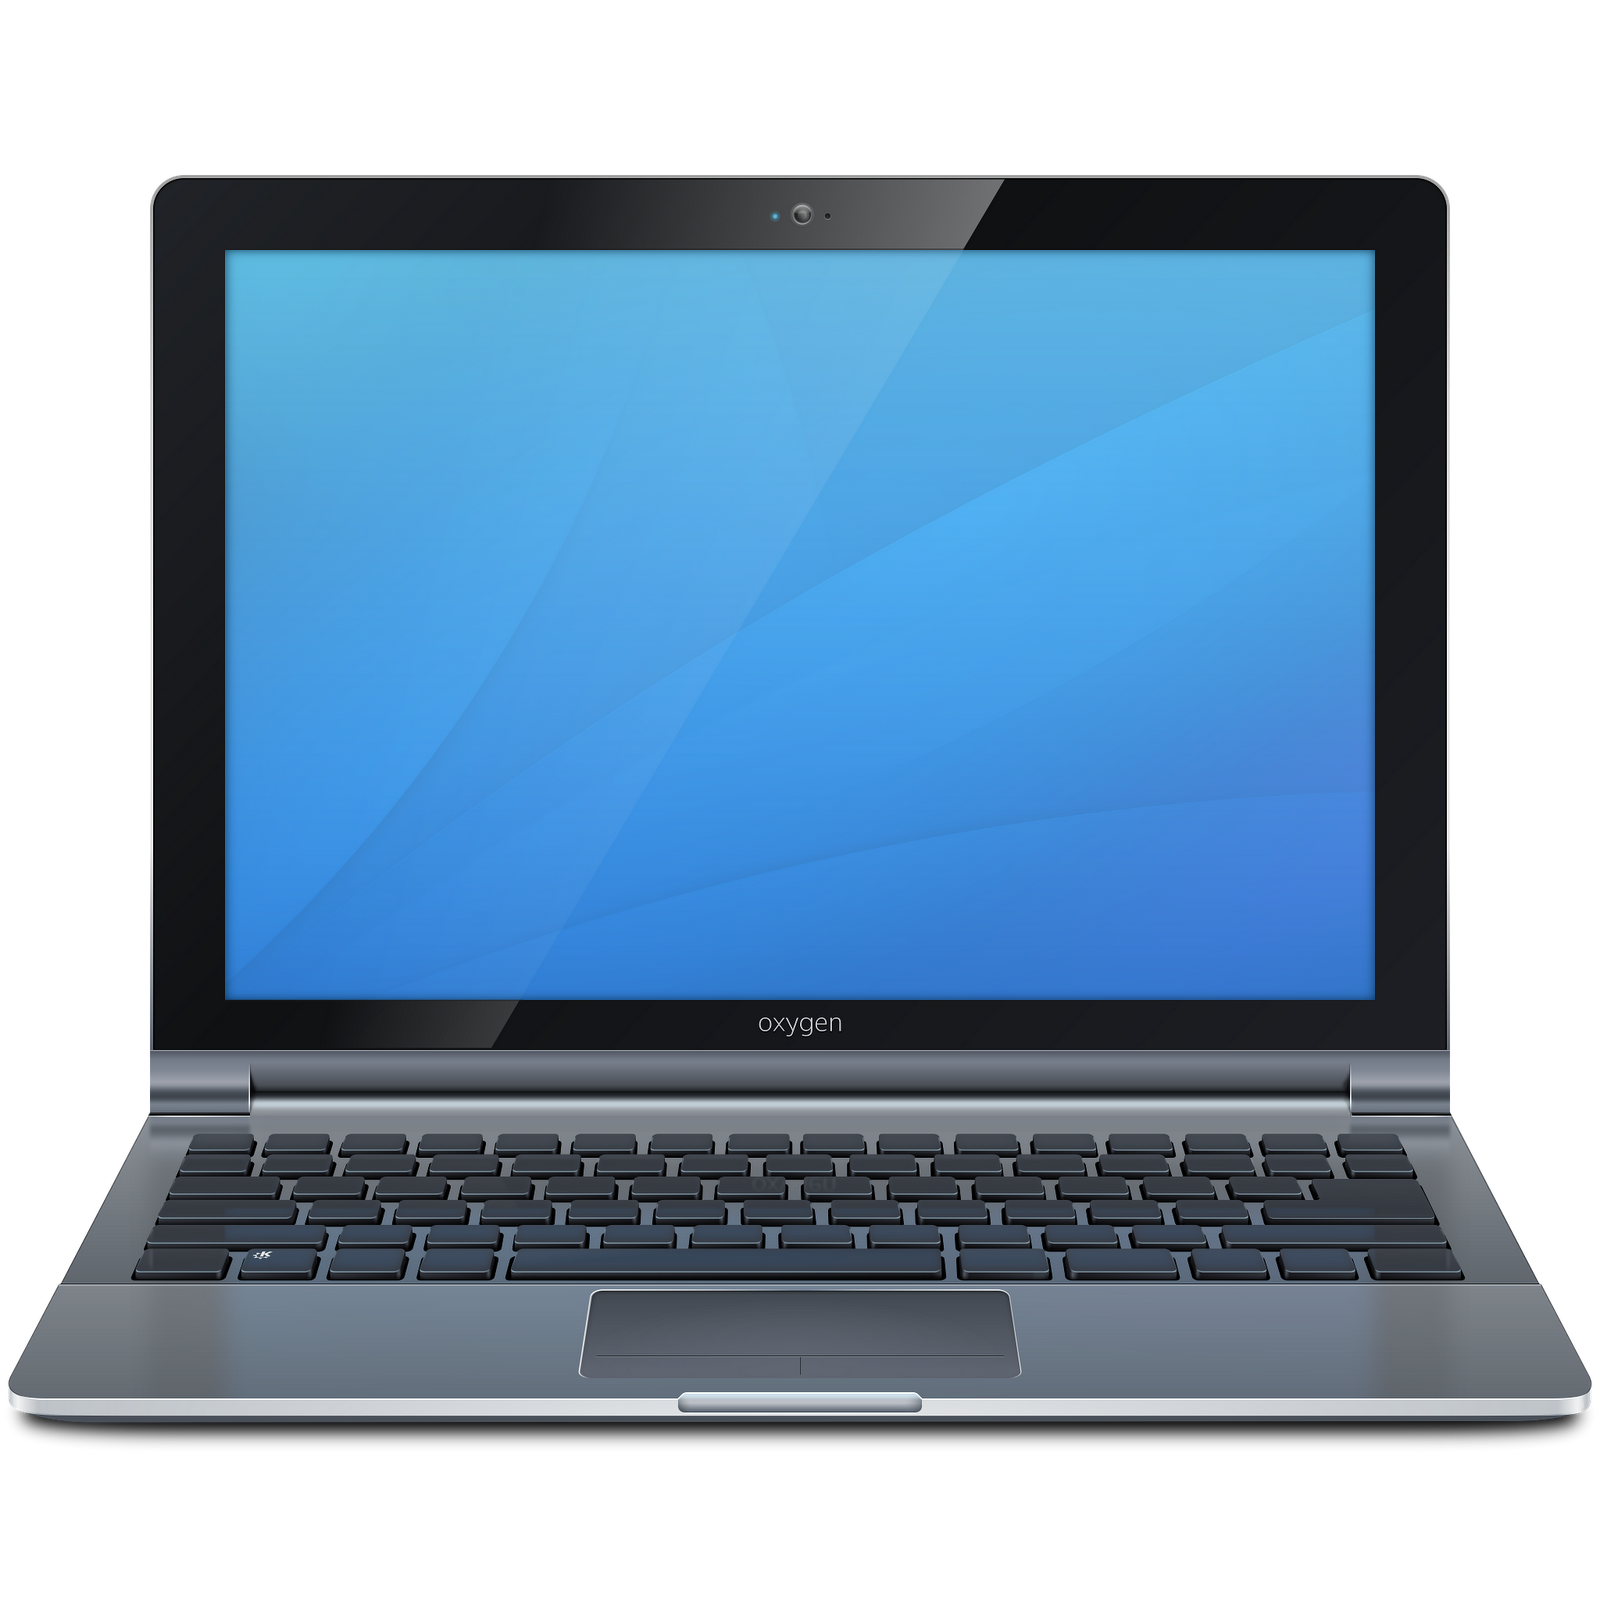 9 Simple Laptop Icon Images